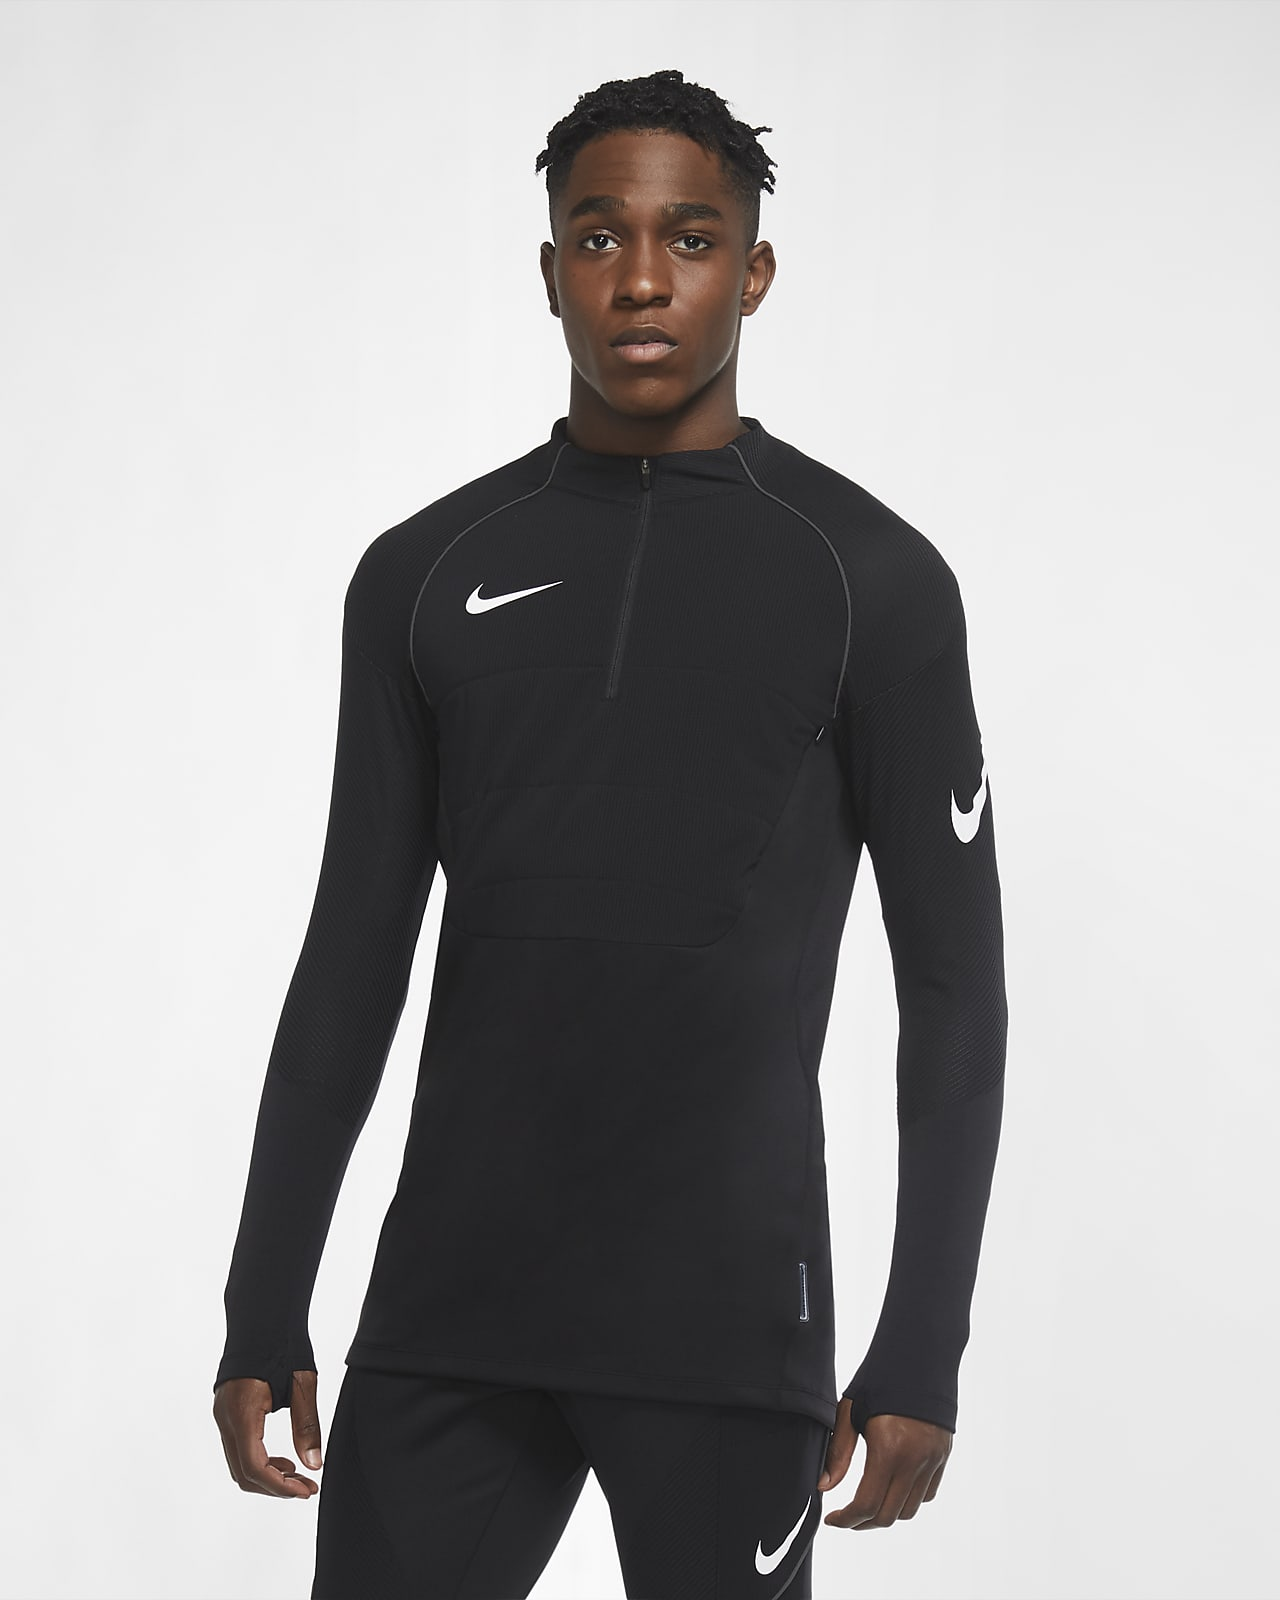 Nike VaporKnit Strike Winter Warrior Gewatteerde voetbaltrainingstop voor heren